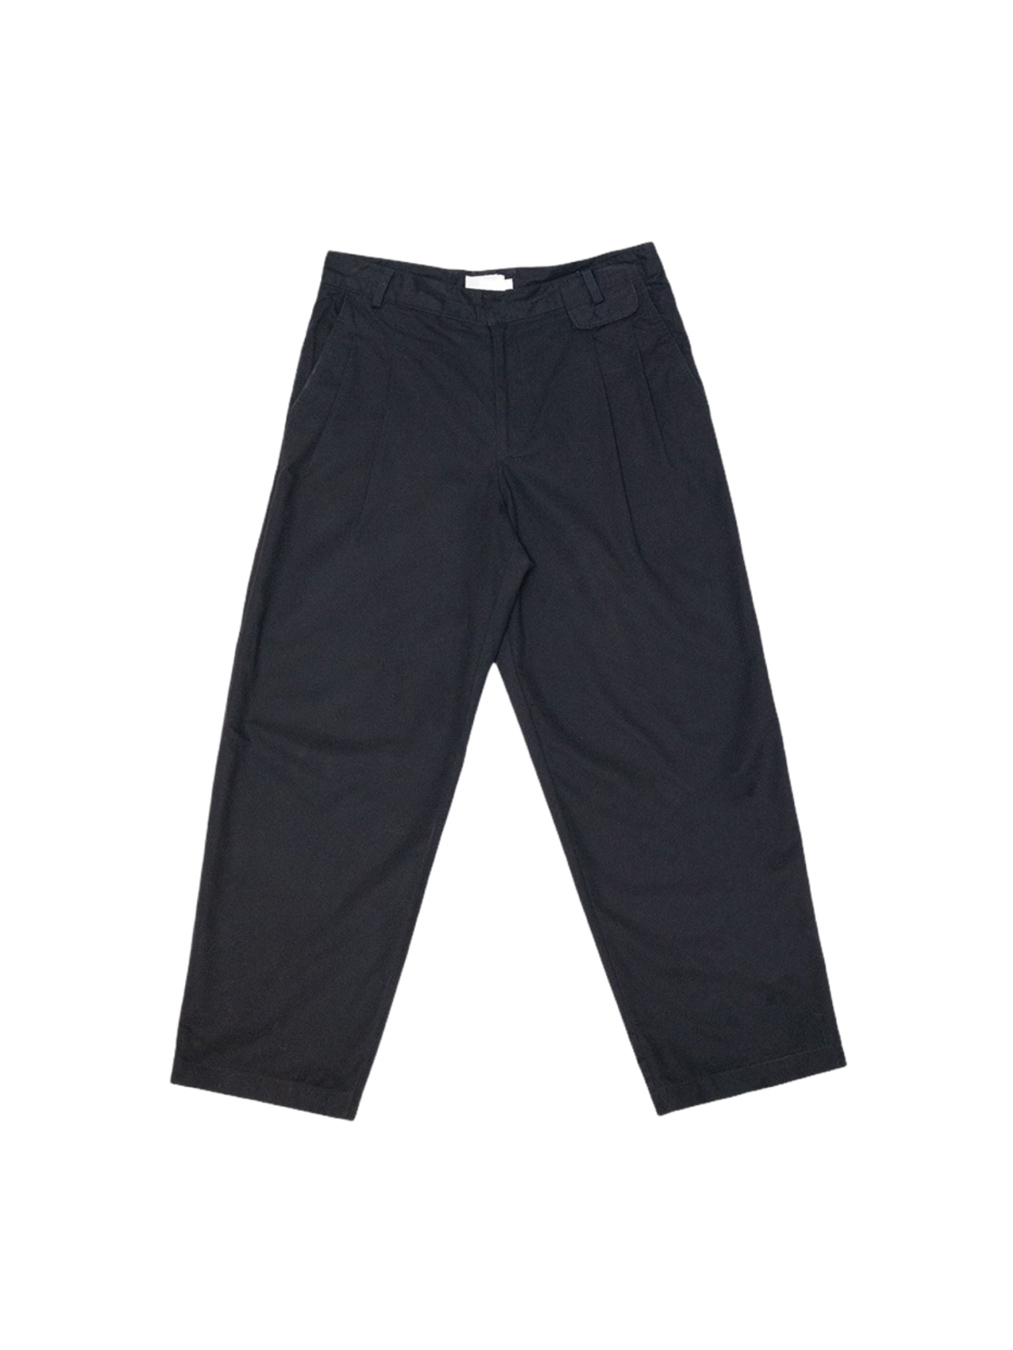 Mens ankle trousers (Black)